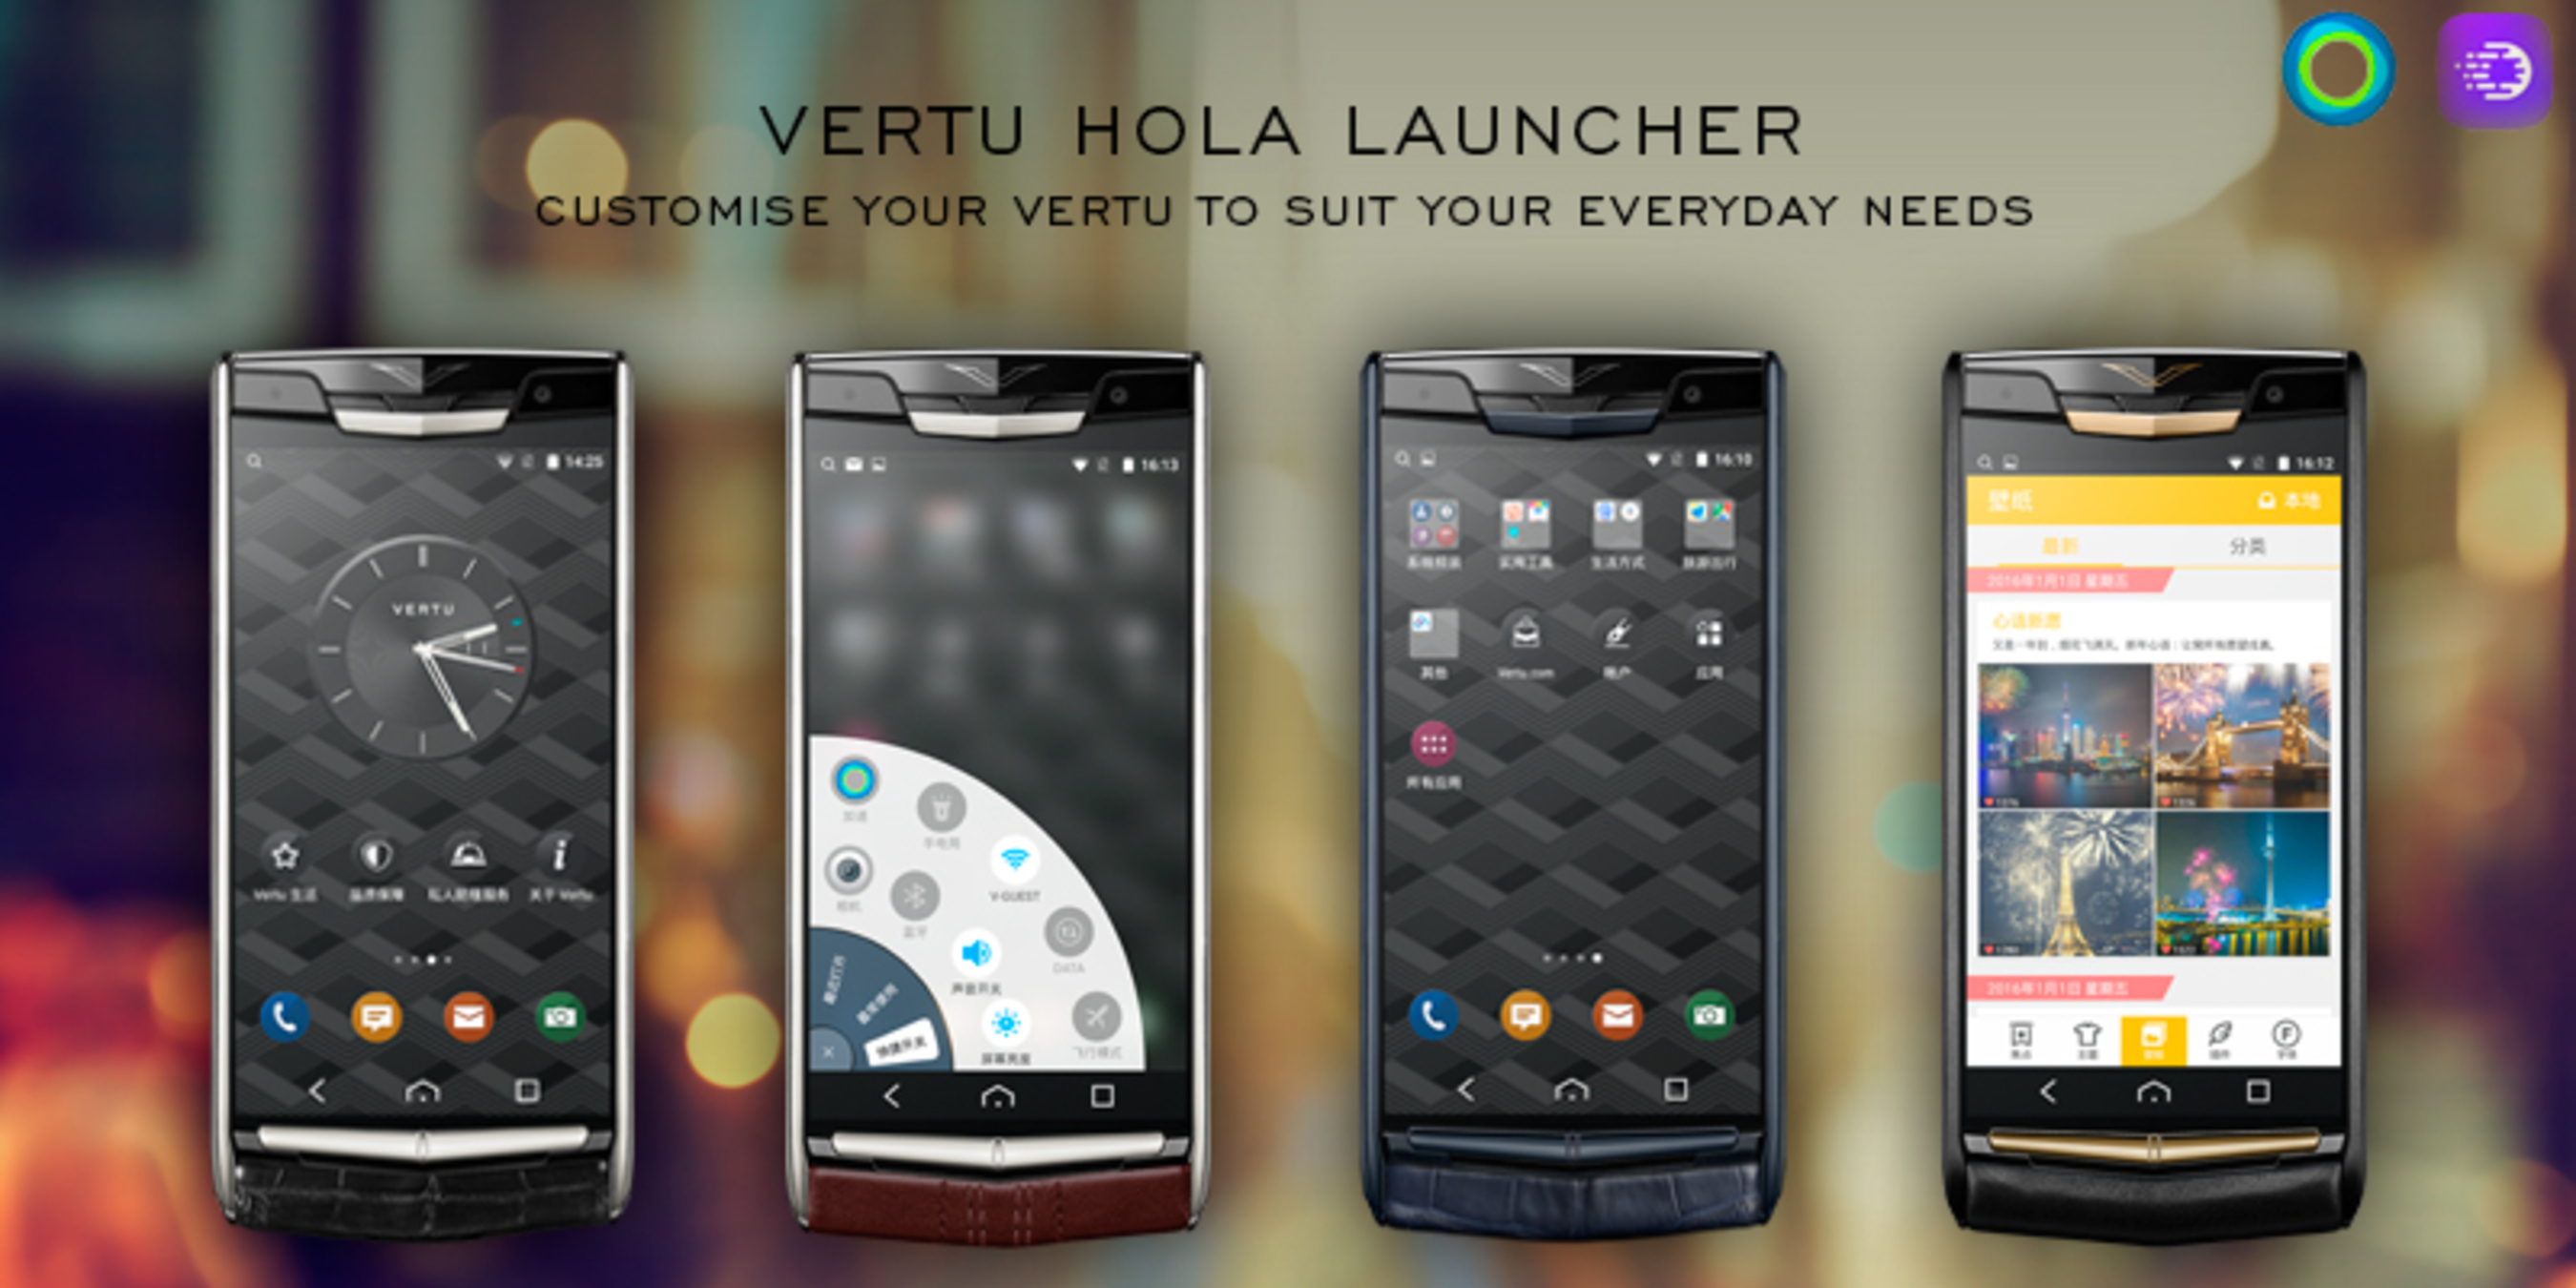 Vertu's New Signature Touch smartphone powered by a custom Hola Launcher's interface includes the ...